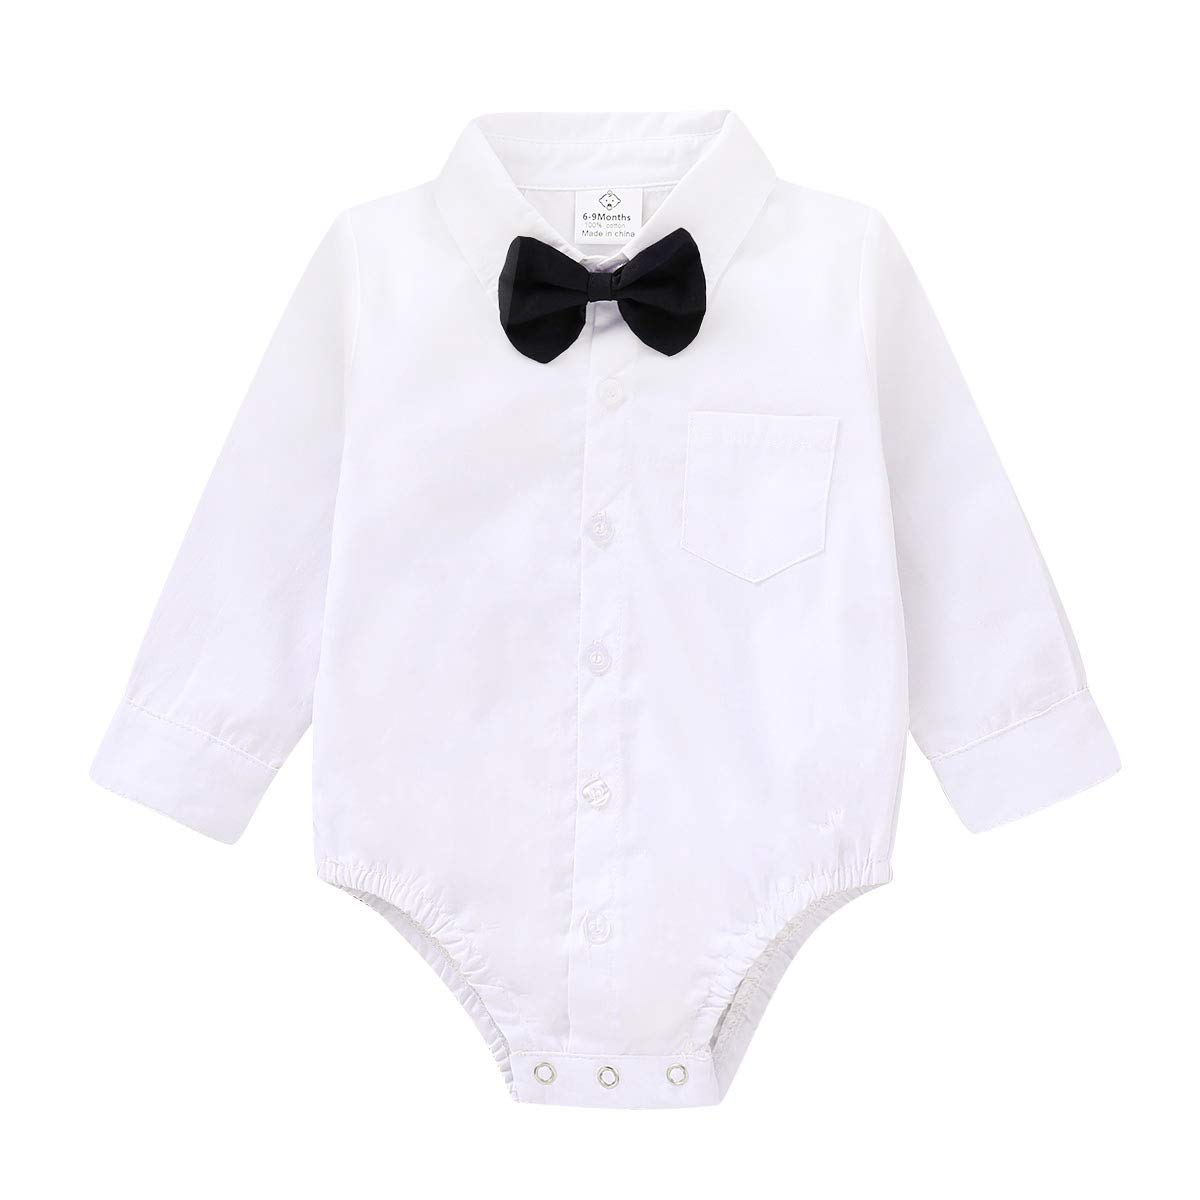 Little Gent Knitted Jumper bodysuit shirt bow tie /& Chino Pant Outfit baby boy